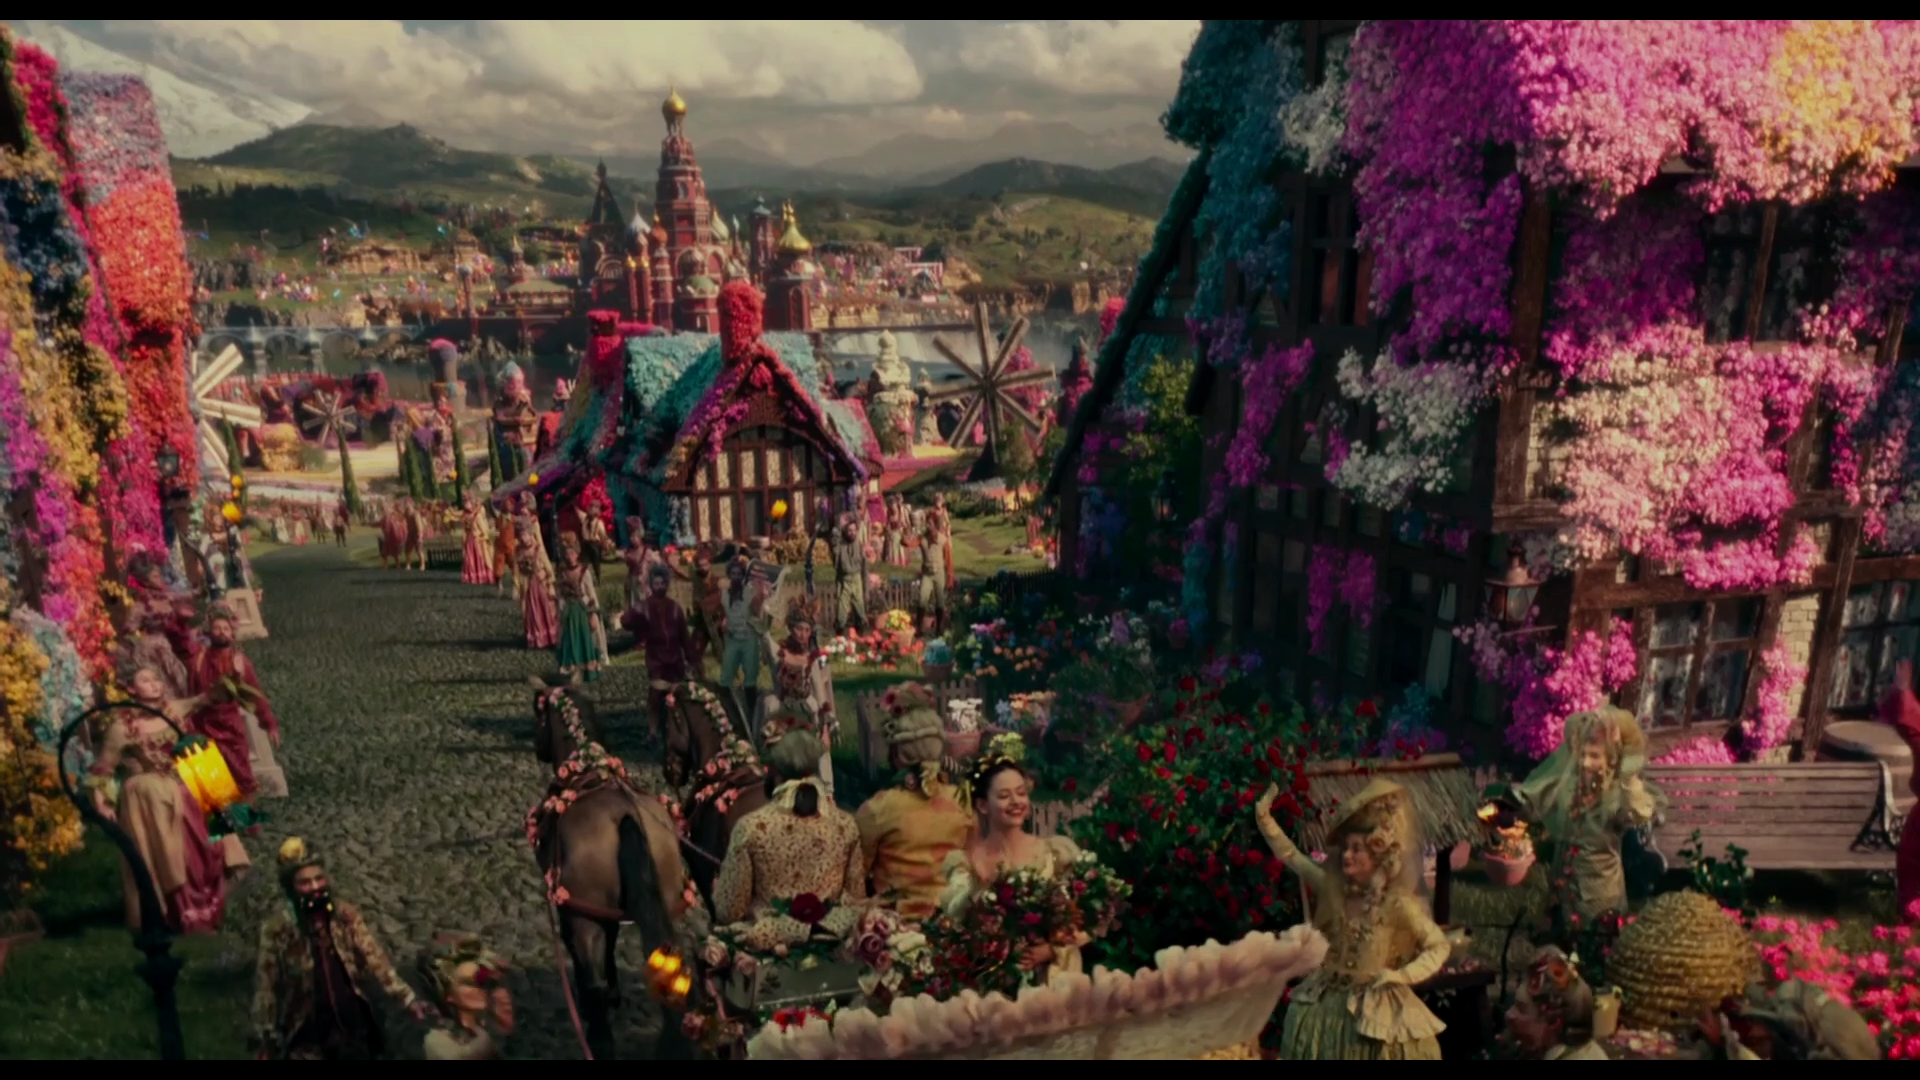 The.Nutcracker.And.The.Four.Realms.2018.1080p.Blu-ray.x264.DTS-BUTTERY.mkv_002314296